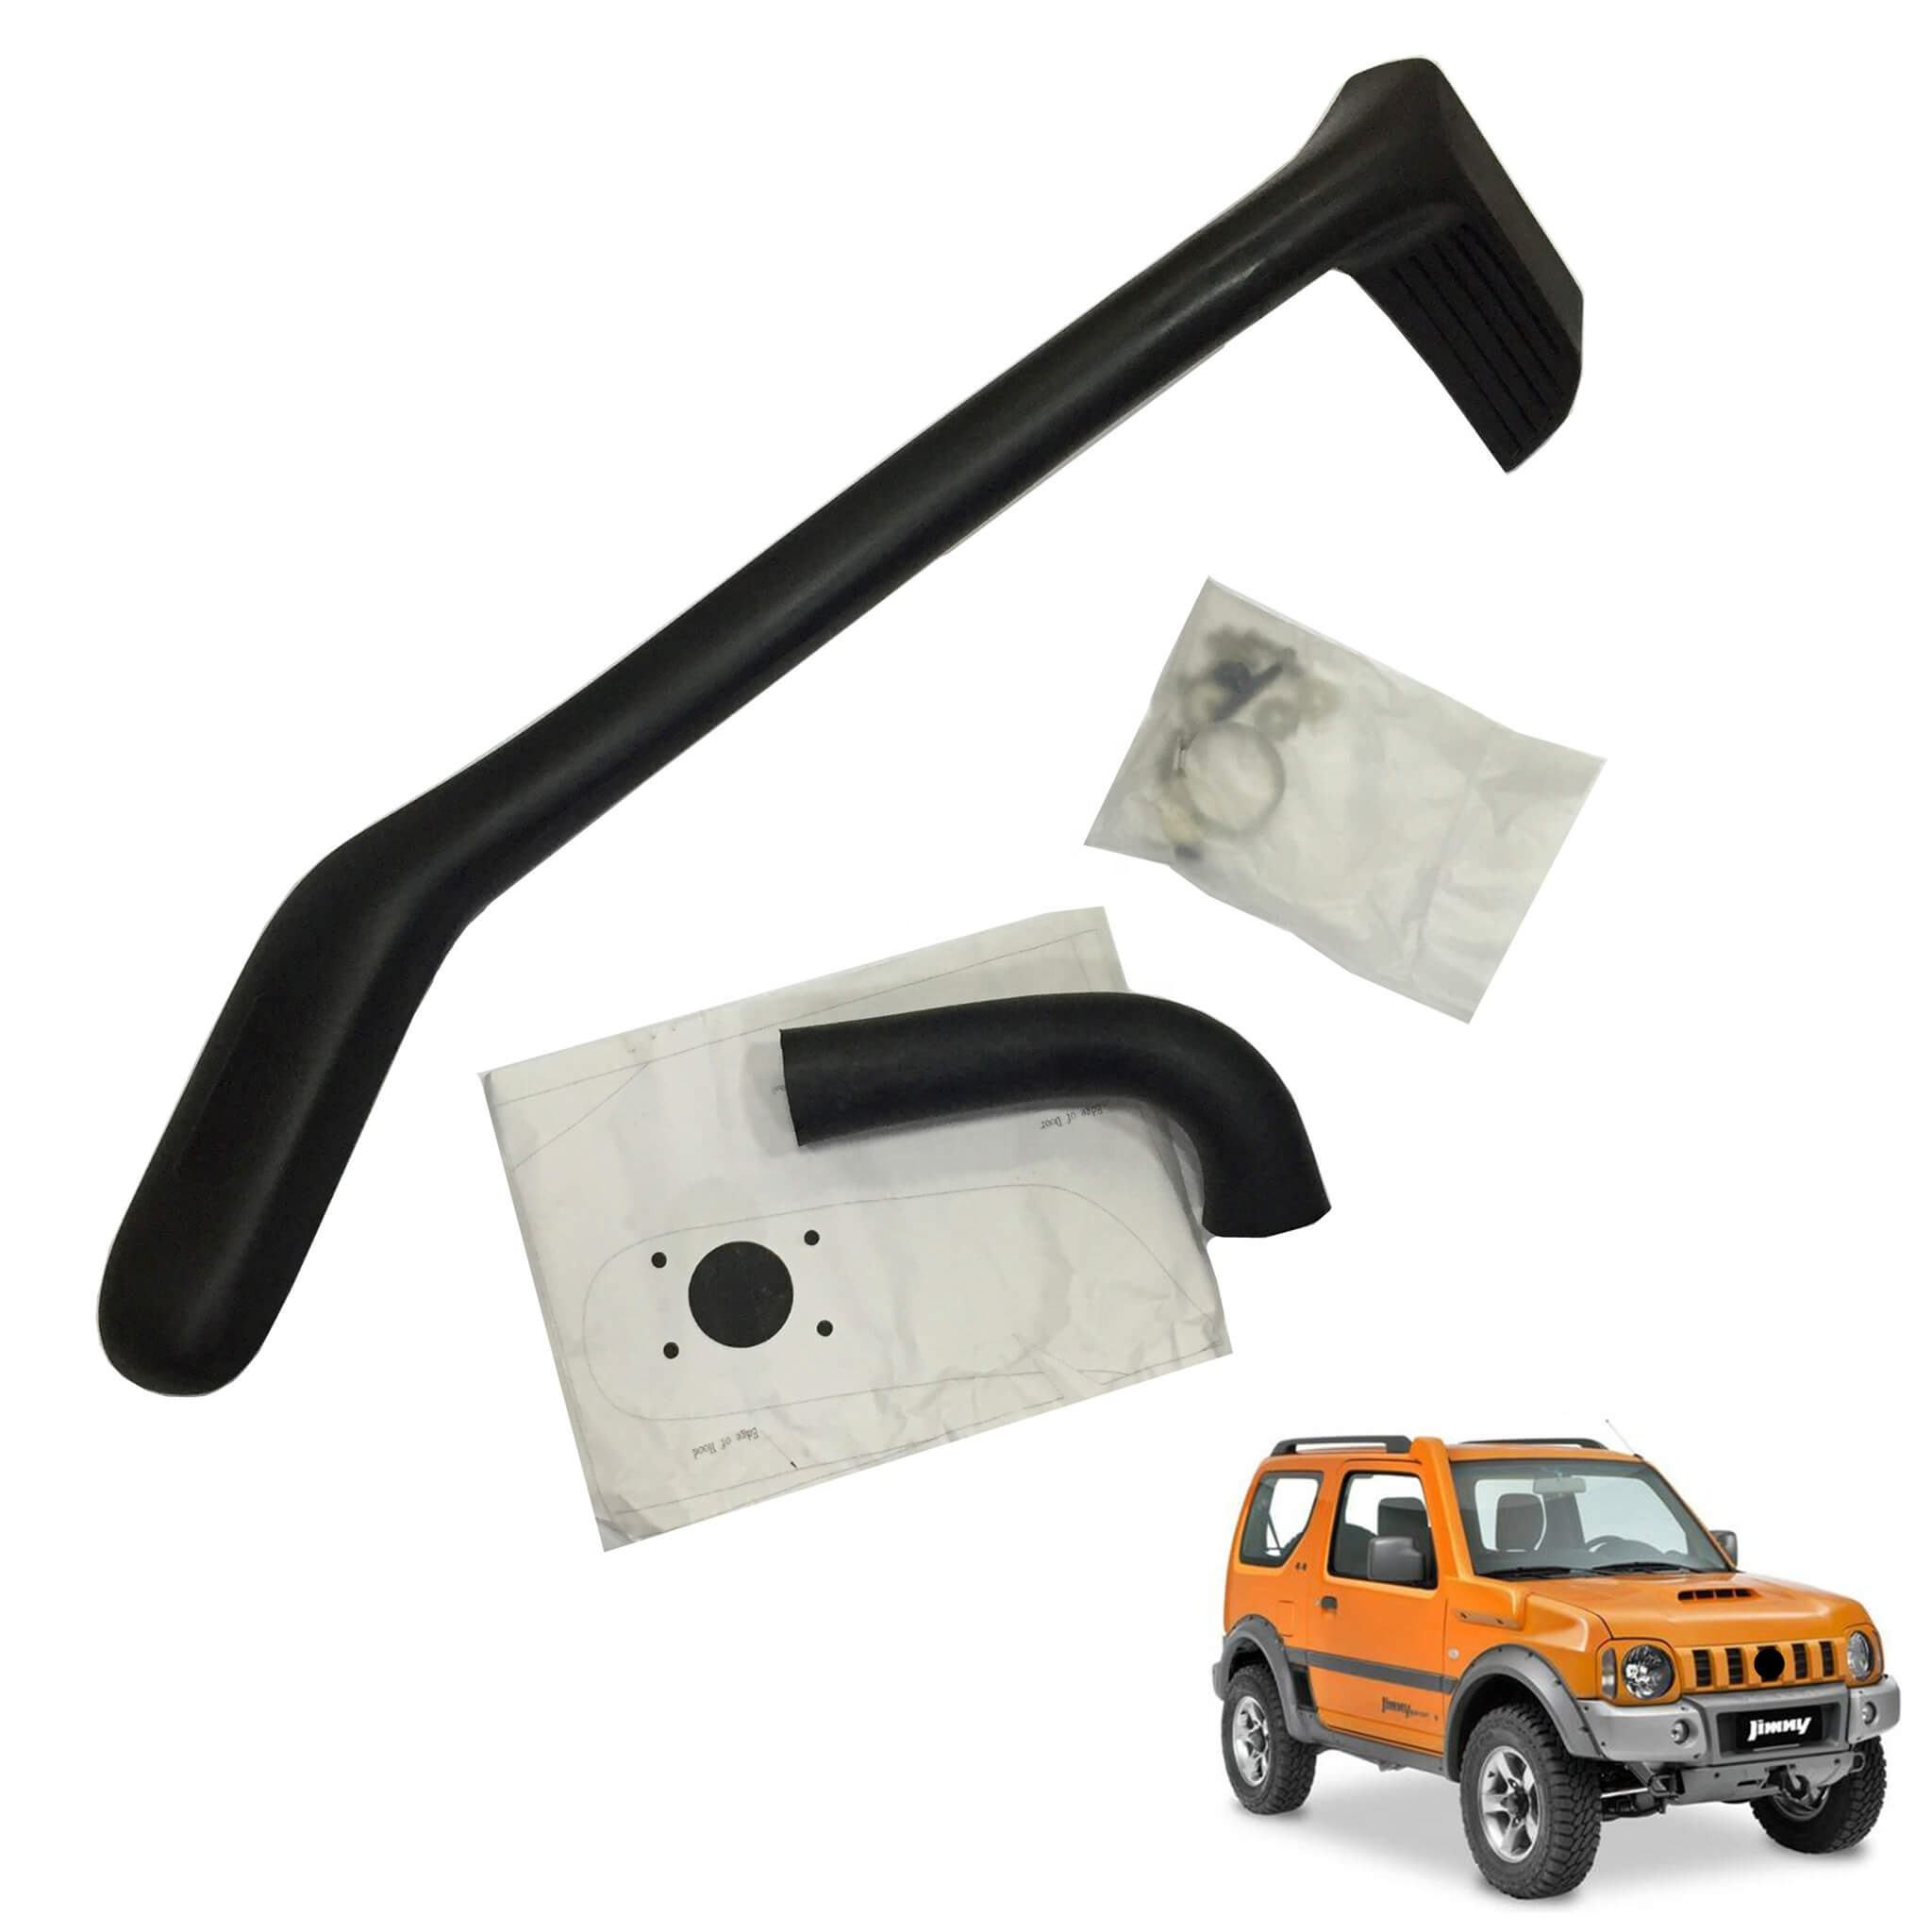 Toyota Land Cruiser V8 Off Road Look Snorkel Kit Expedition Air Ram Intake Set